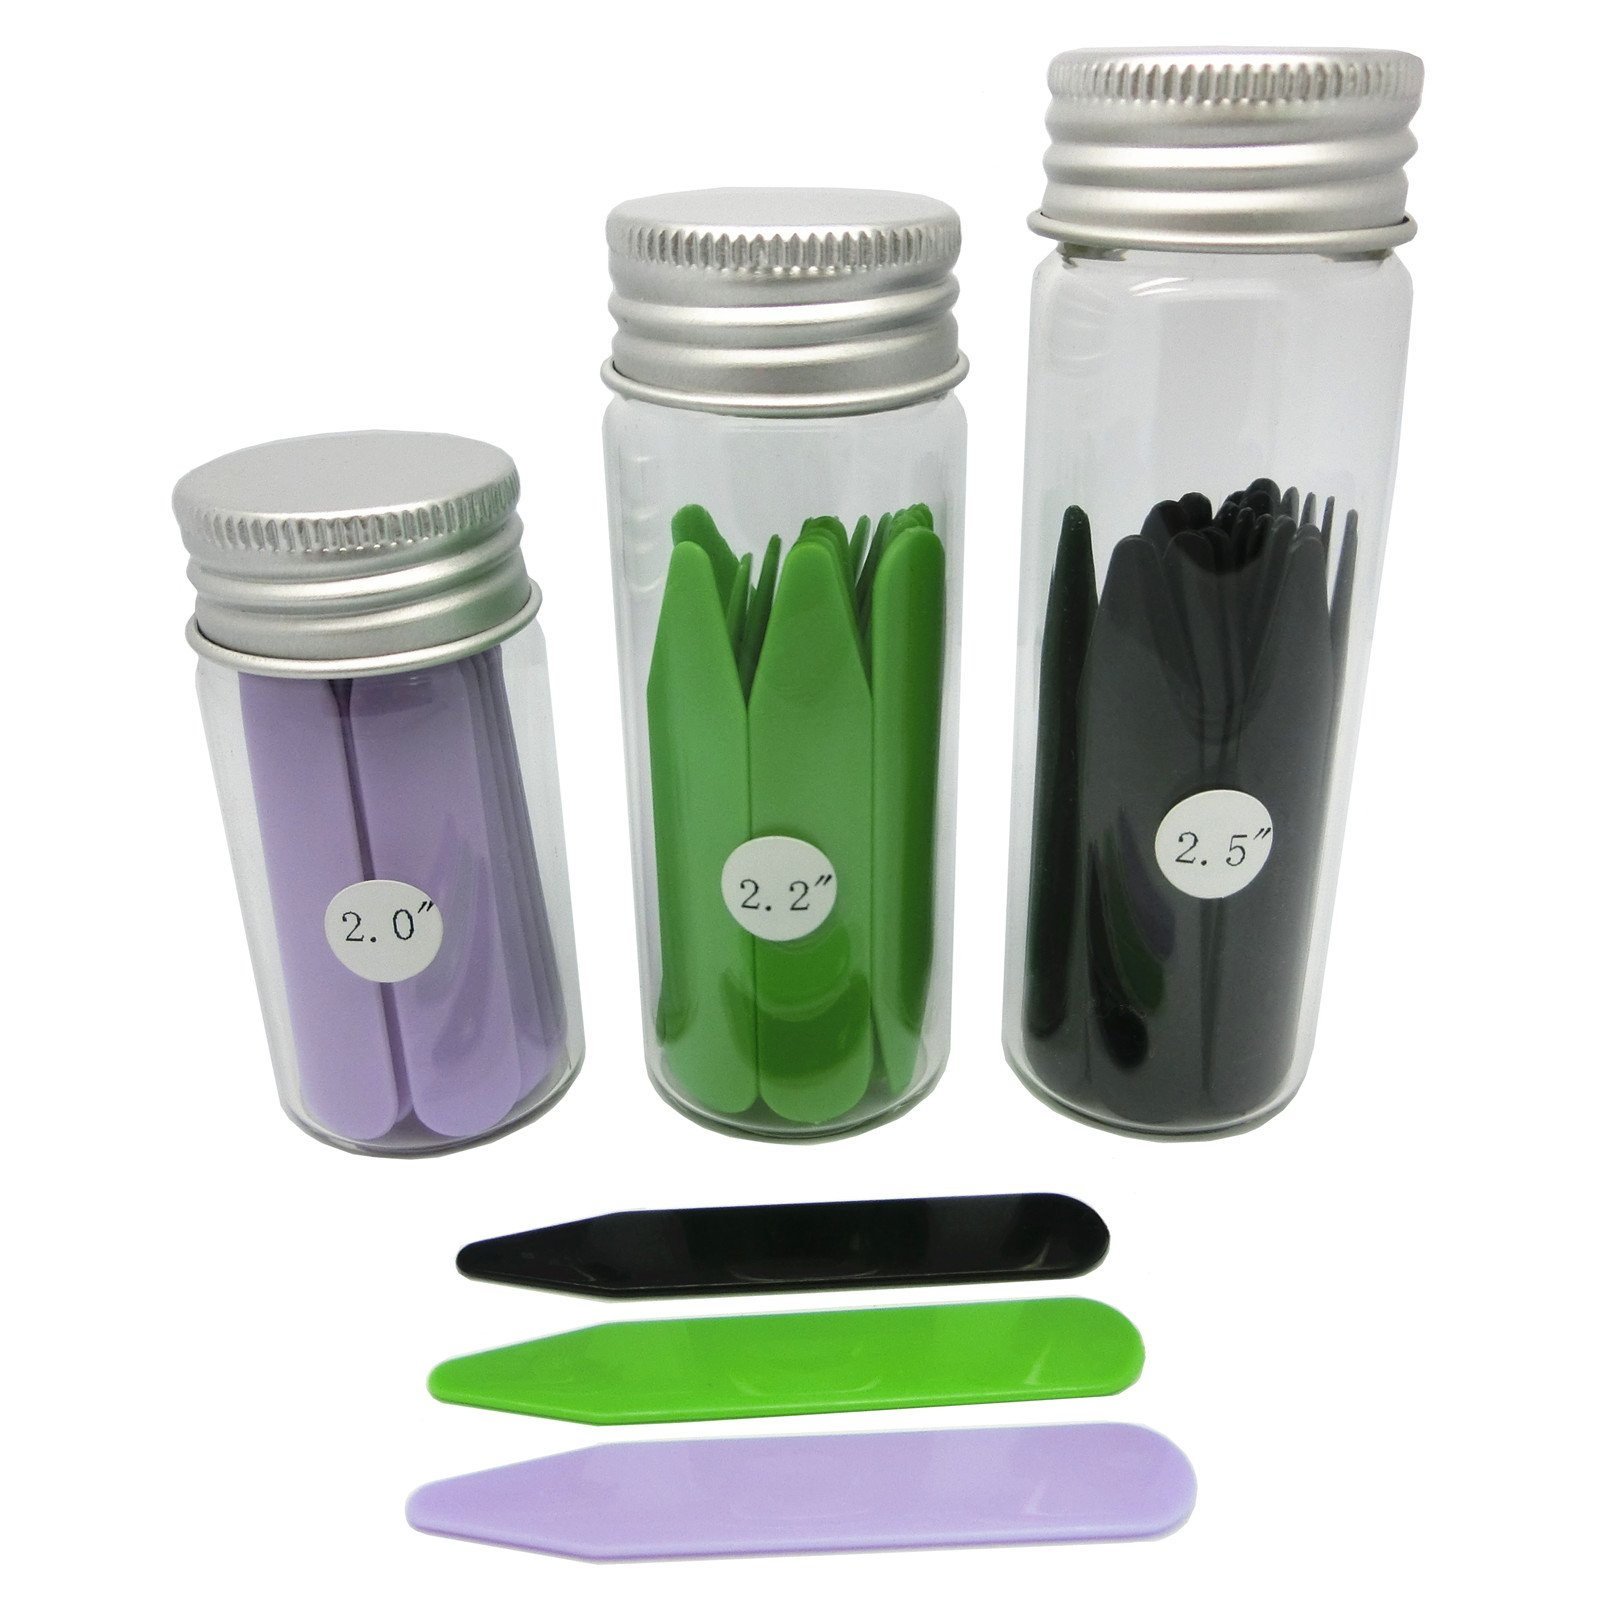 Shang Zun 48 Pcs Plastic Collar Stays in 3 Glass Bottles,3 Colors, 2''/2.2''/2.5''